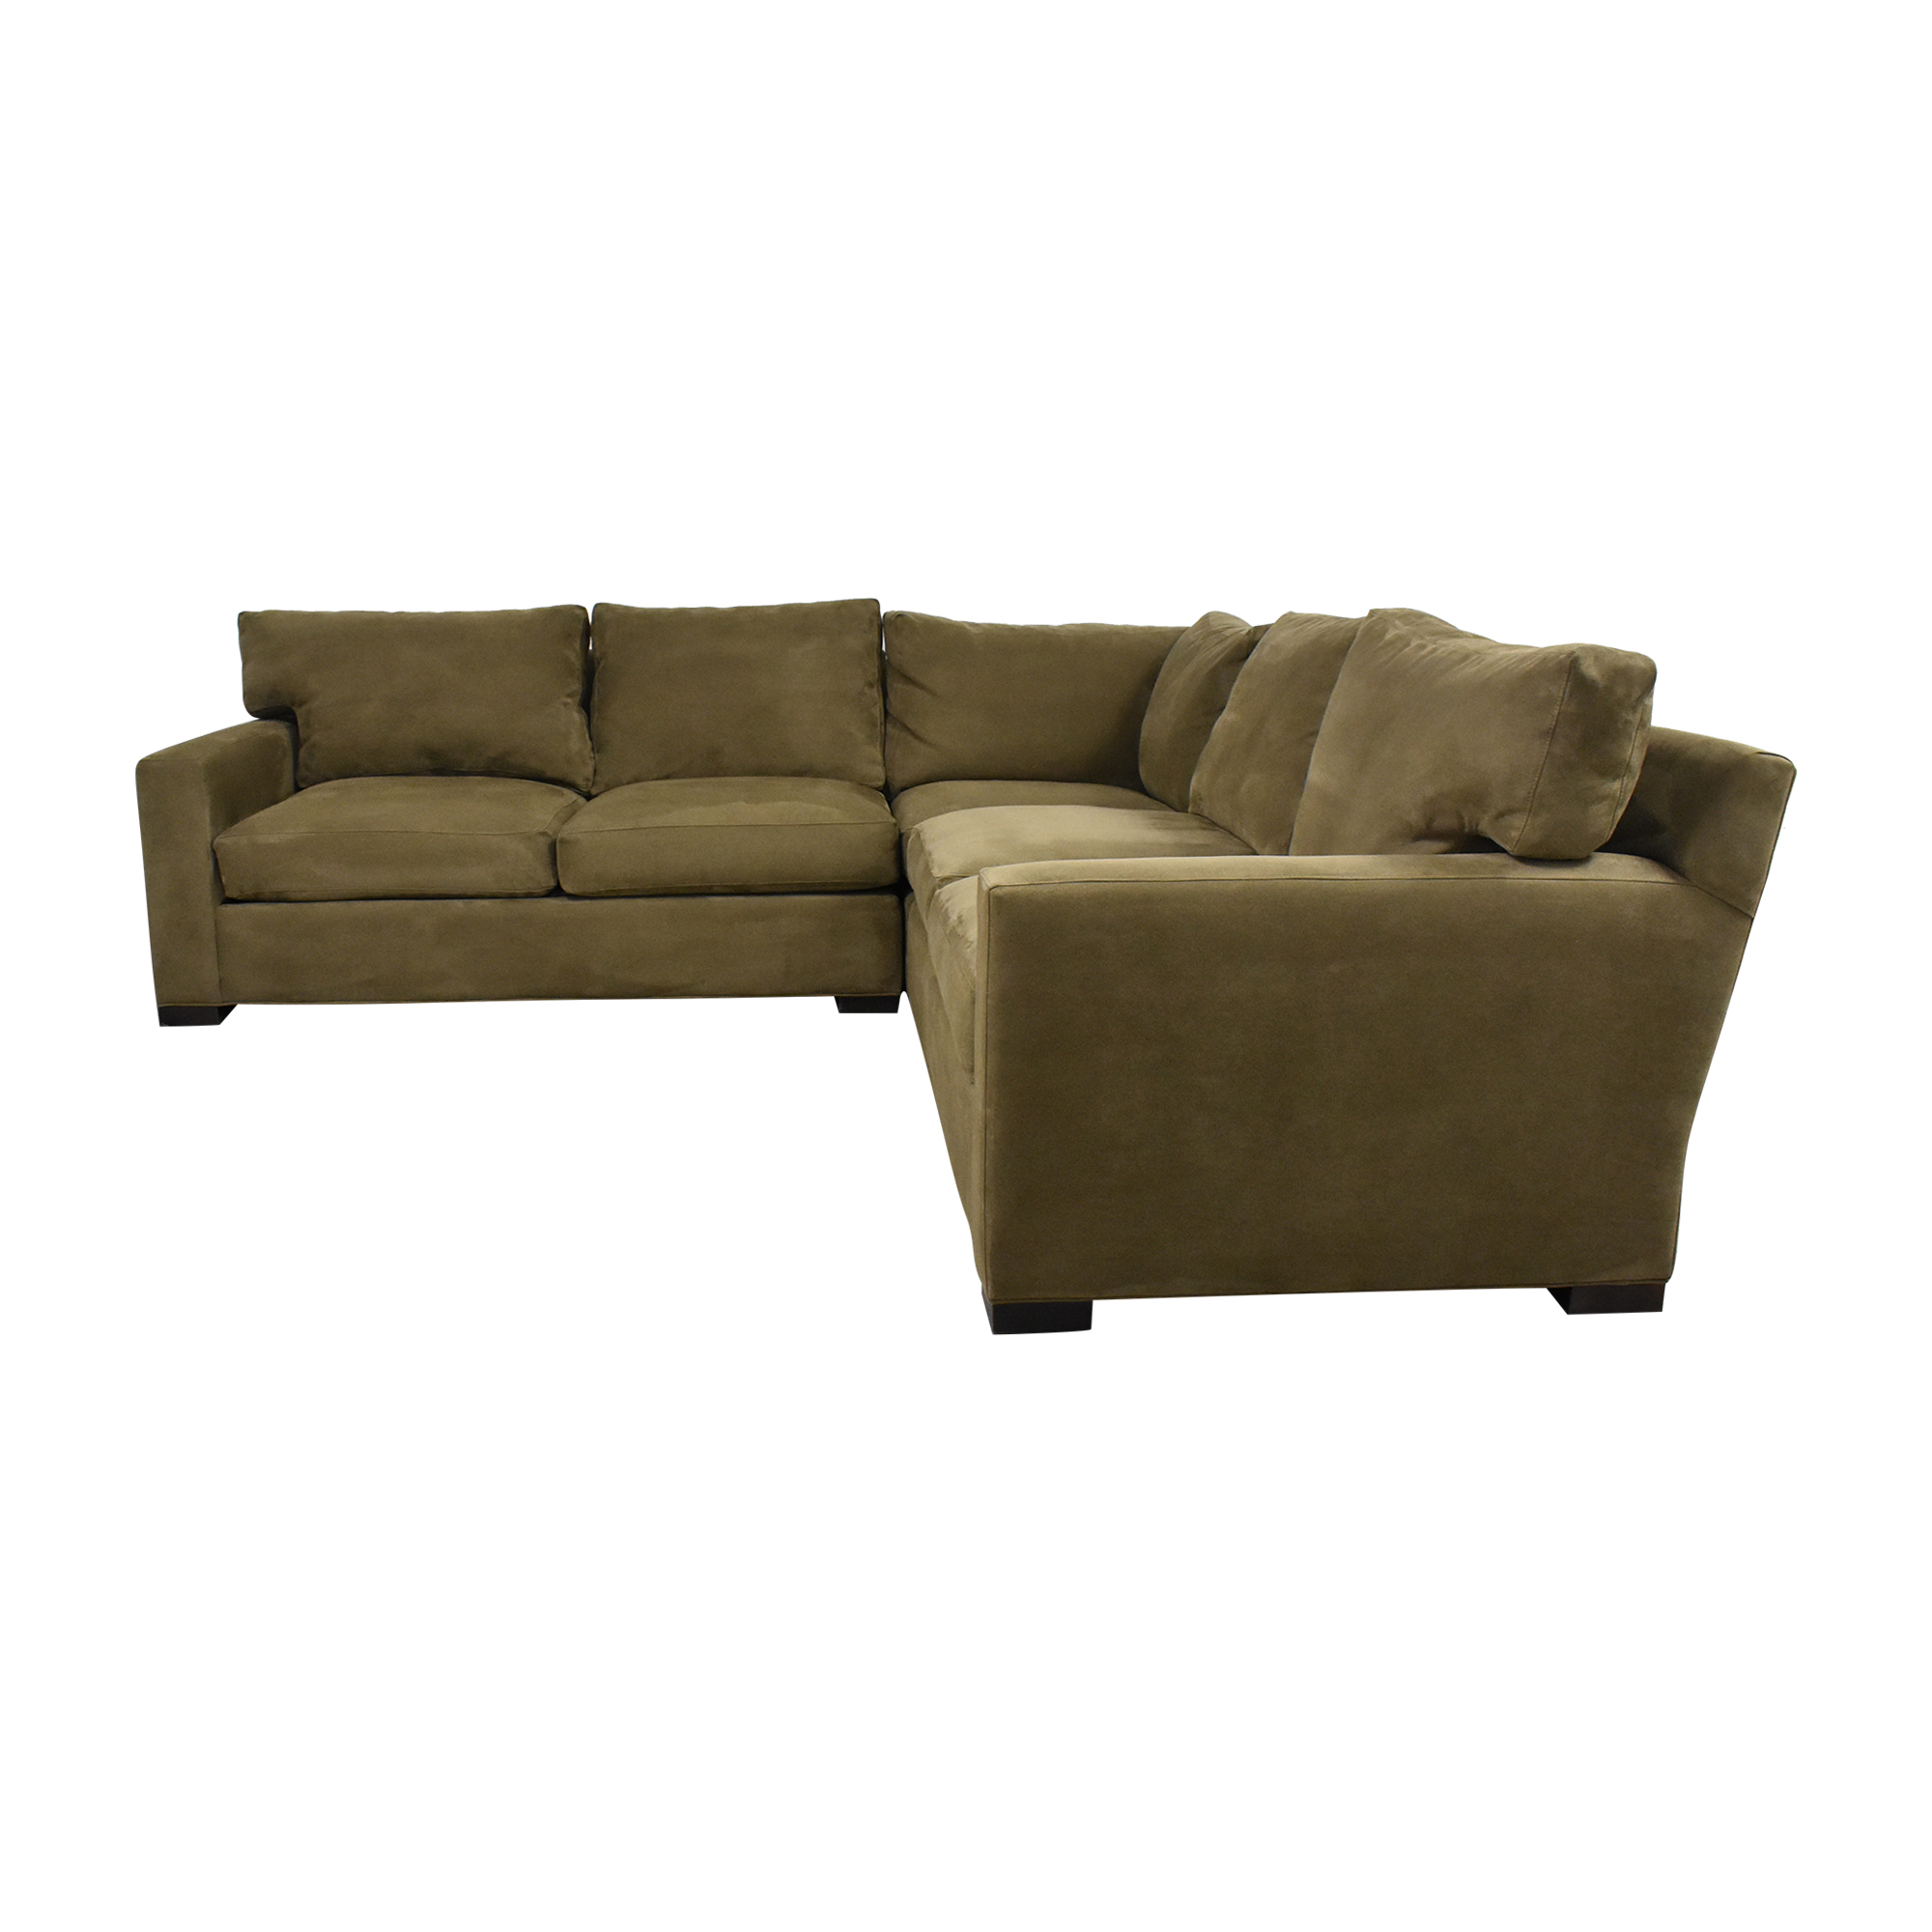 Crate & Barrel Crate & Barrel Corner Sectional Sofa used